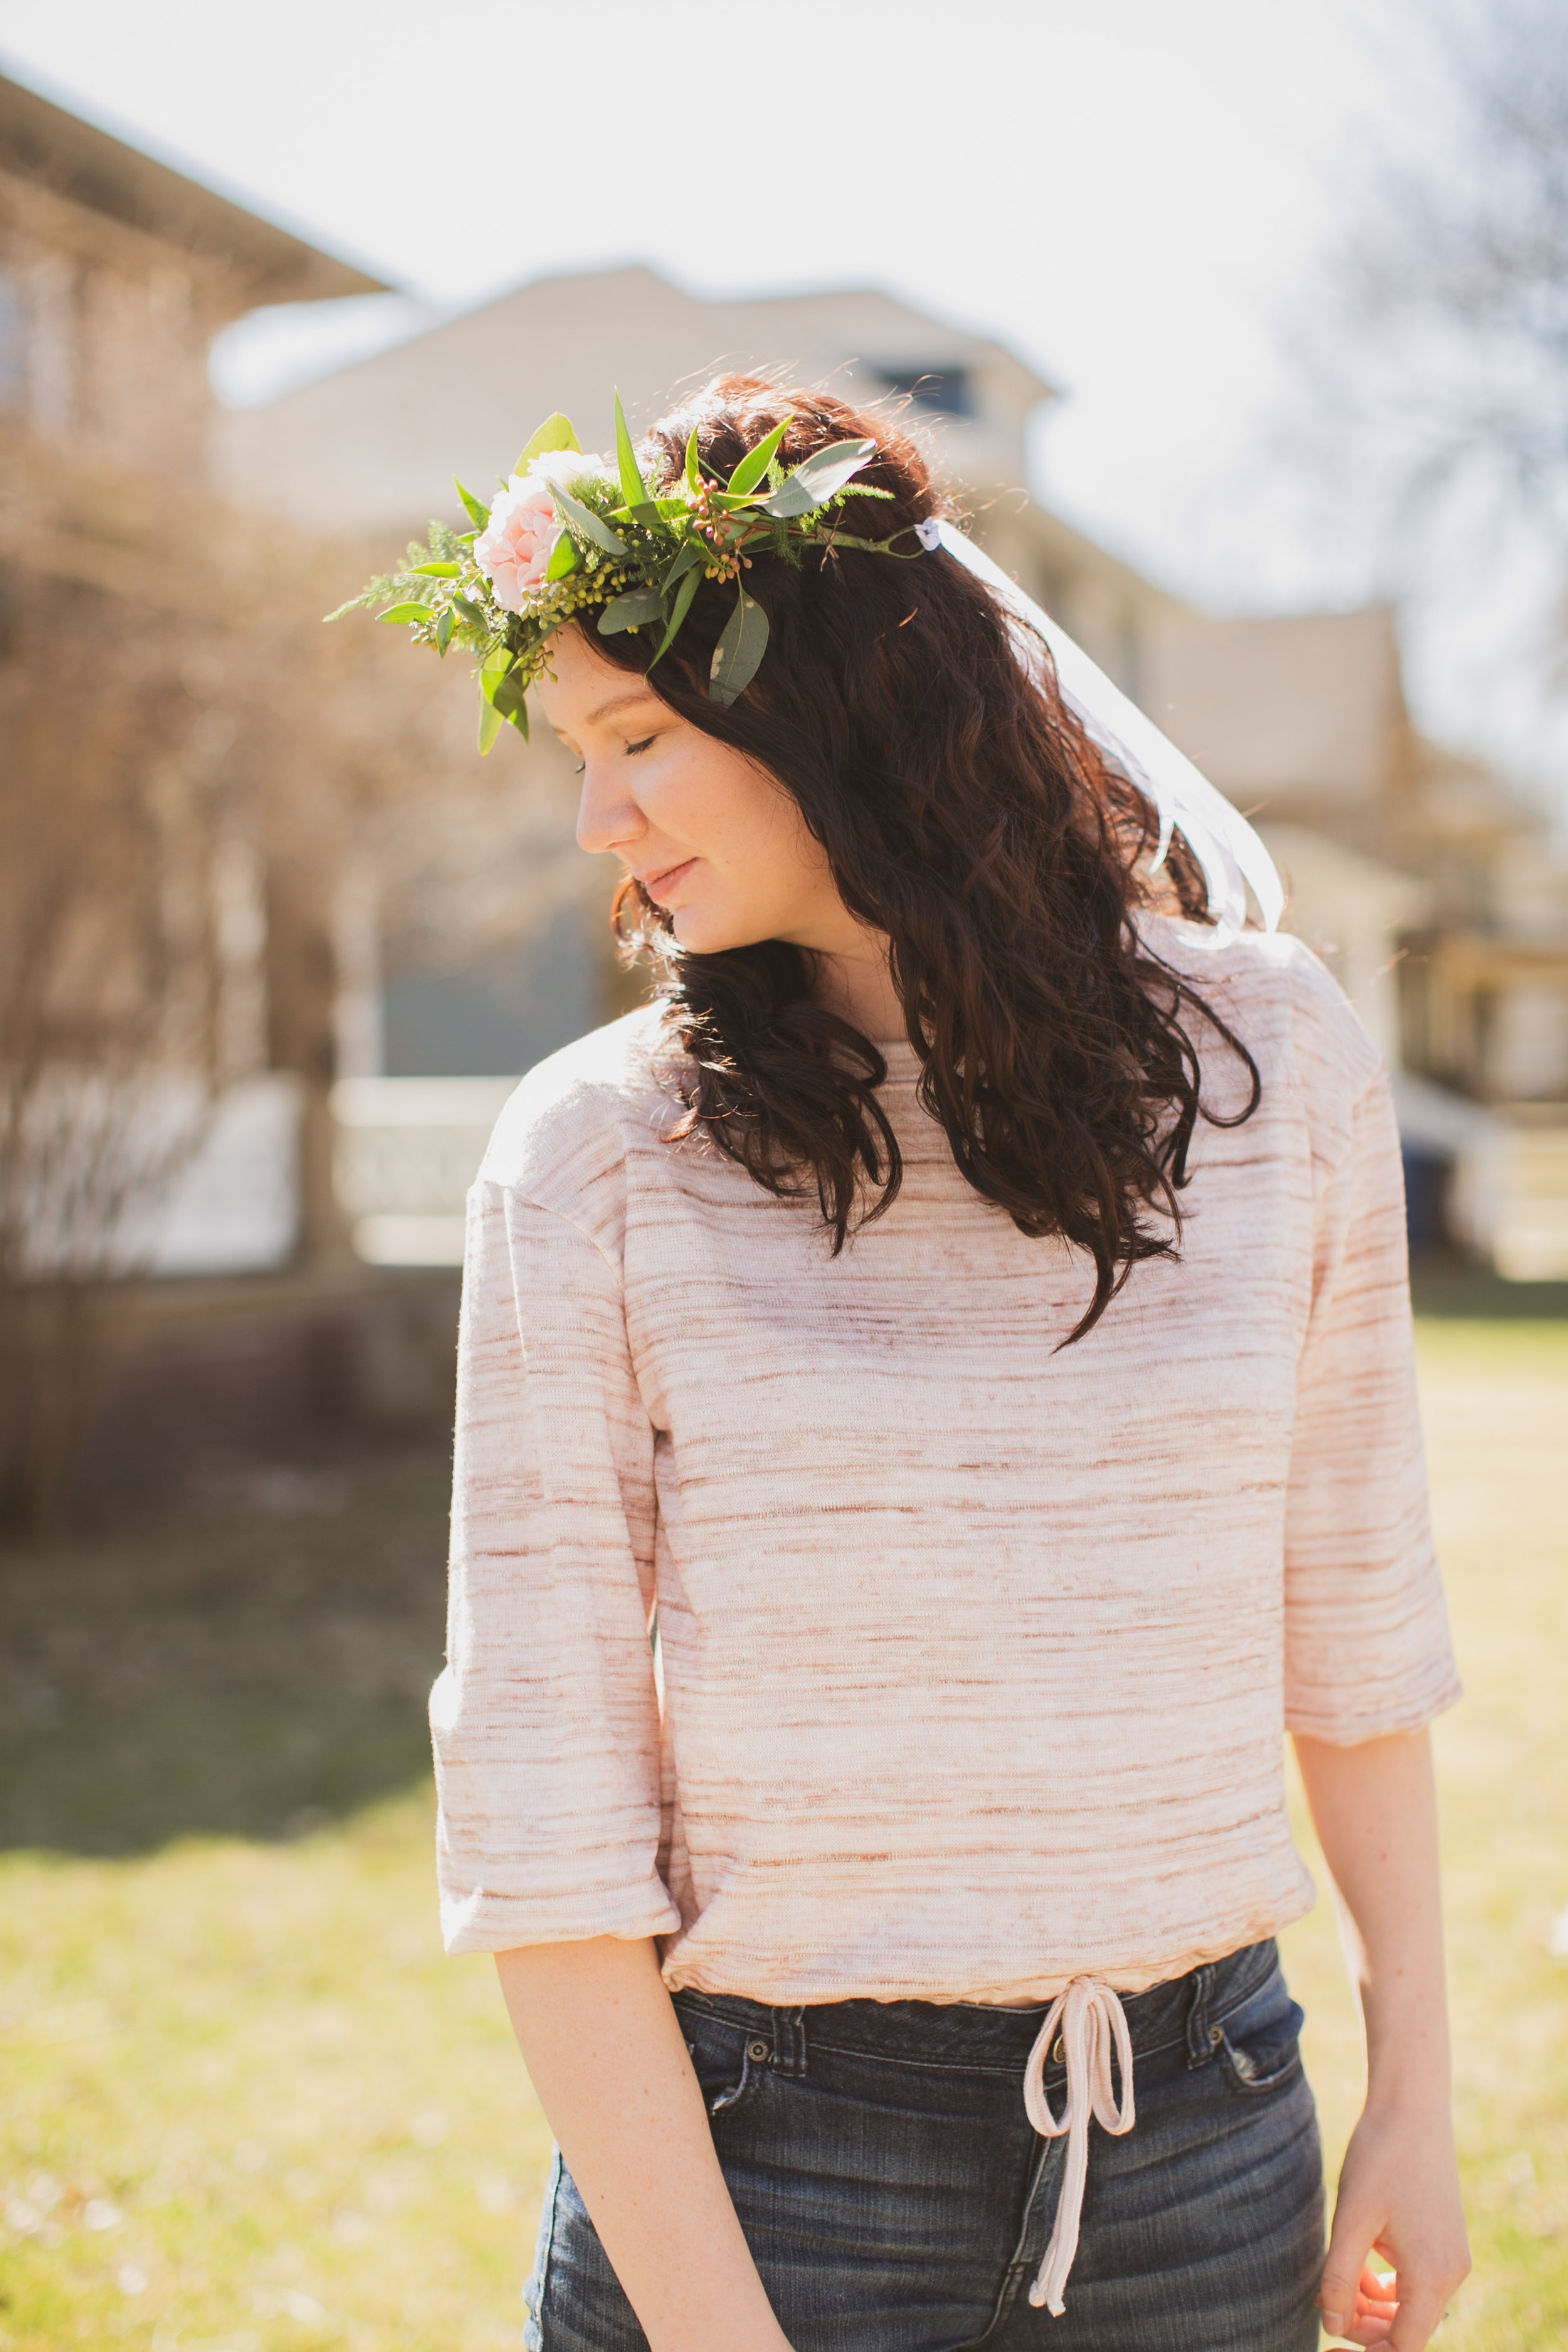 des-moines-flower-crown-party-brides